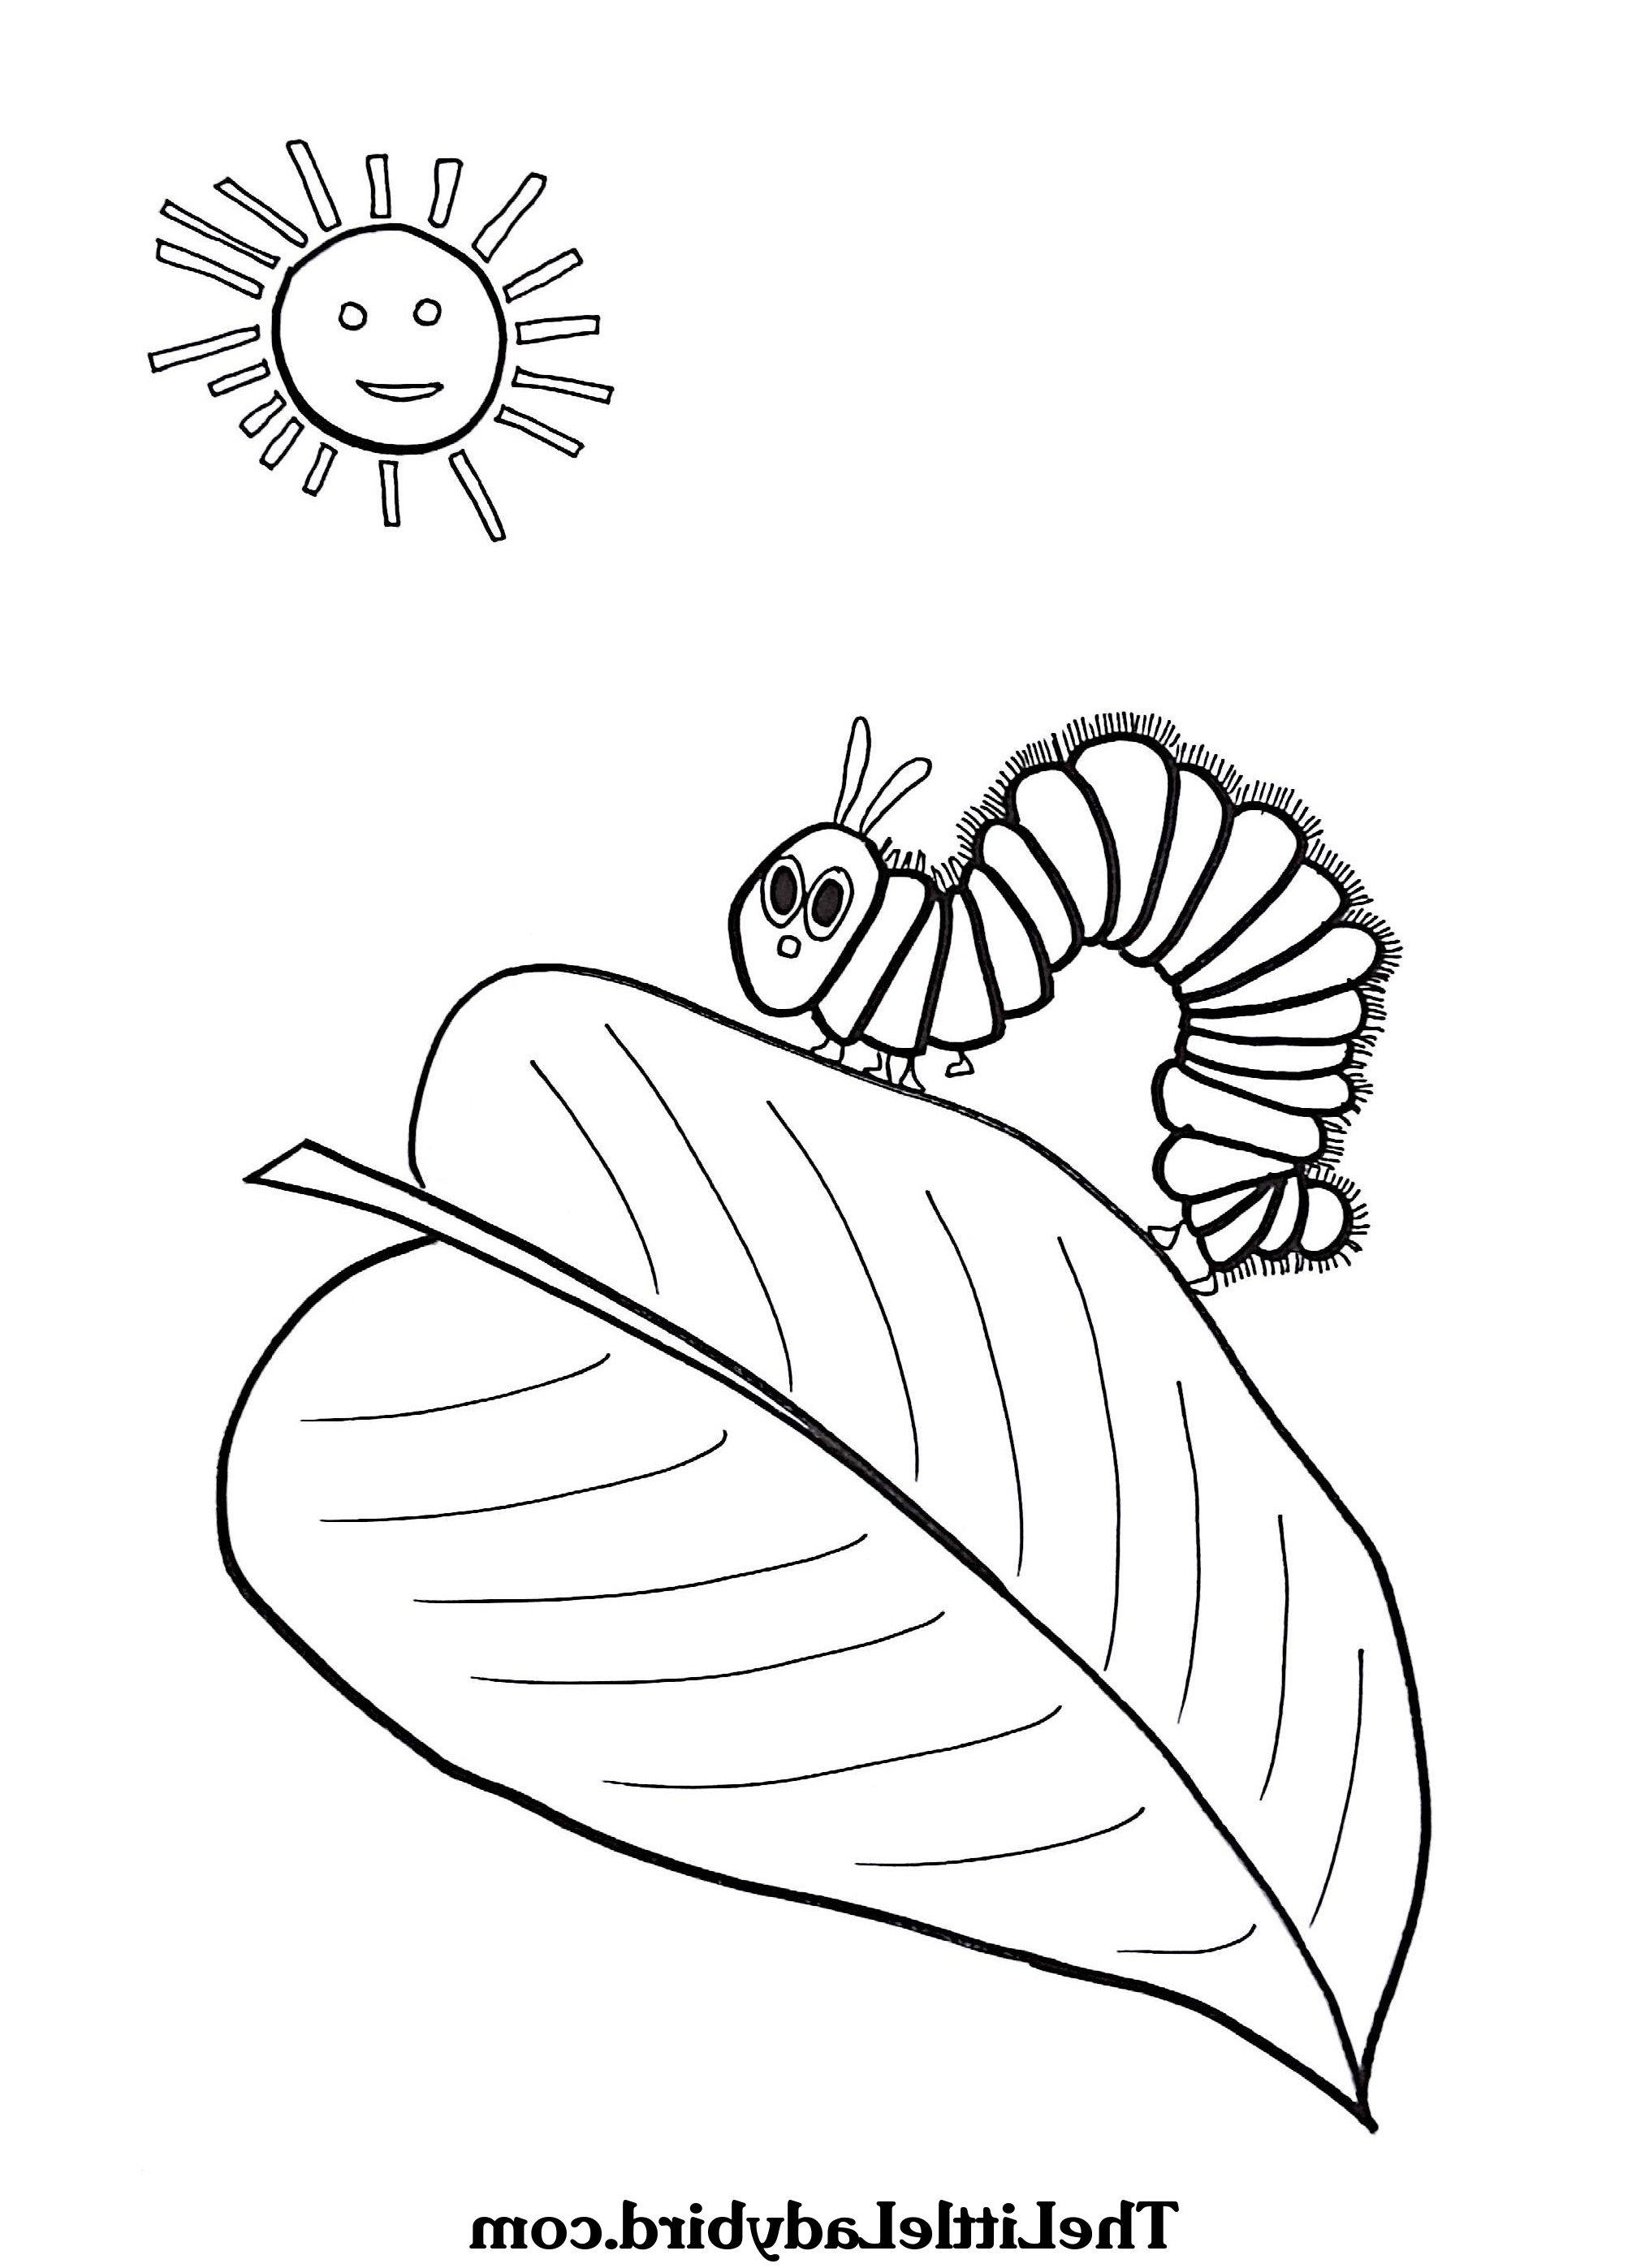 Hungry Caterpillar Coloring Pages Very Hungry Caterpillar Coloring Page Dxjz Free The Hungry